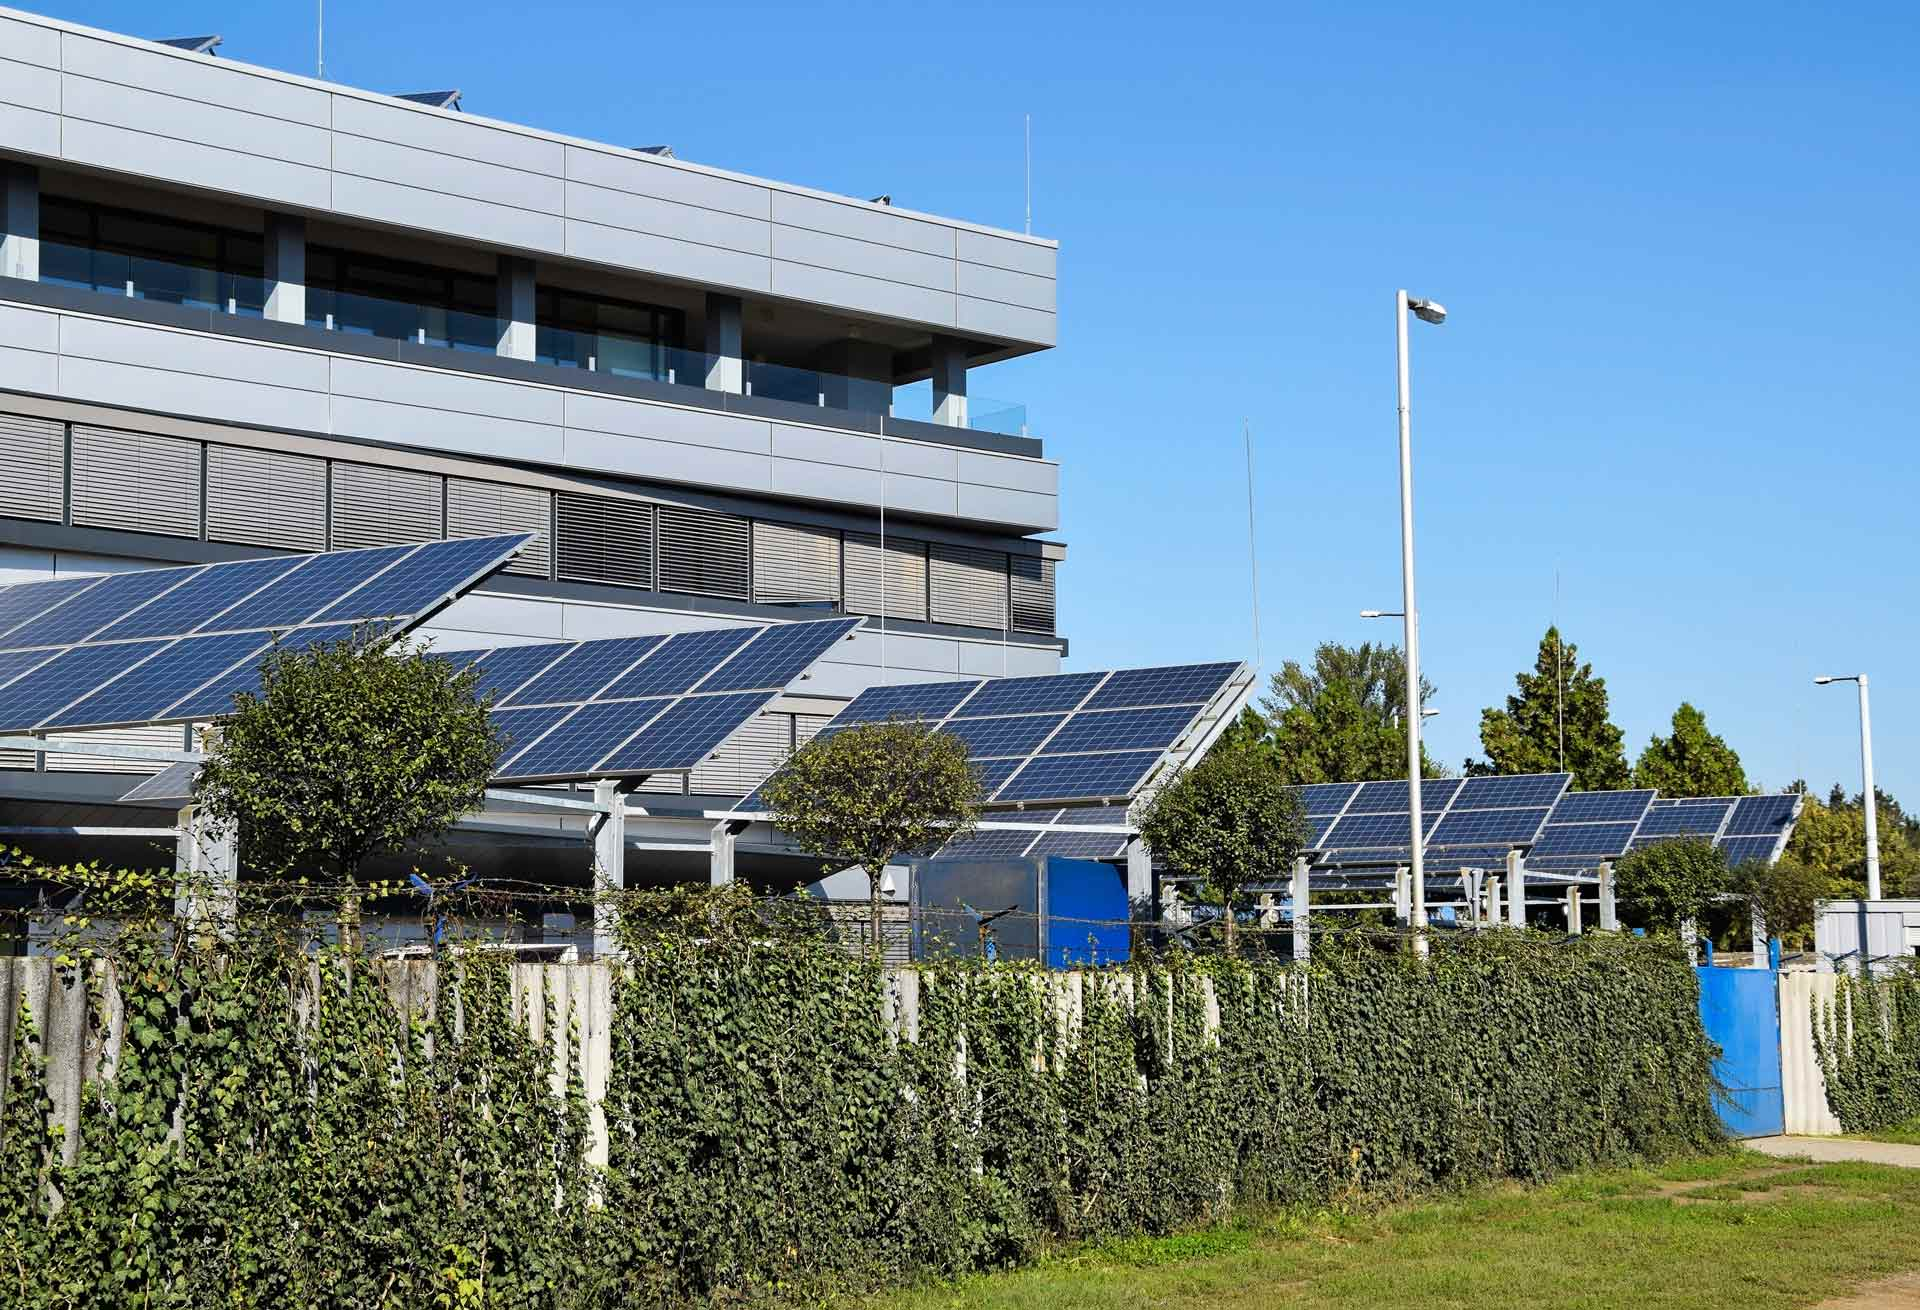 Banks of solar cells fitted outside a large industrial building